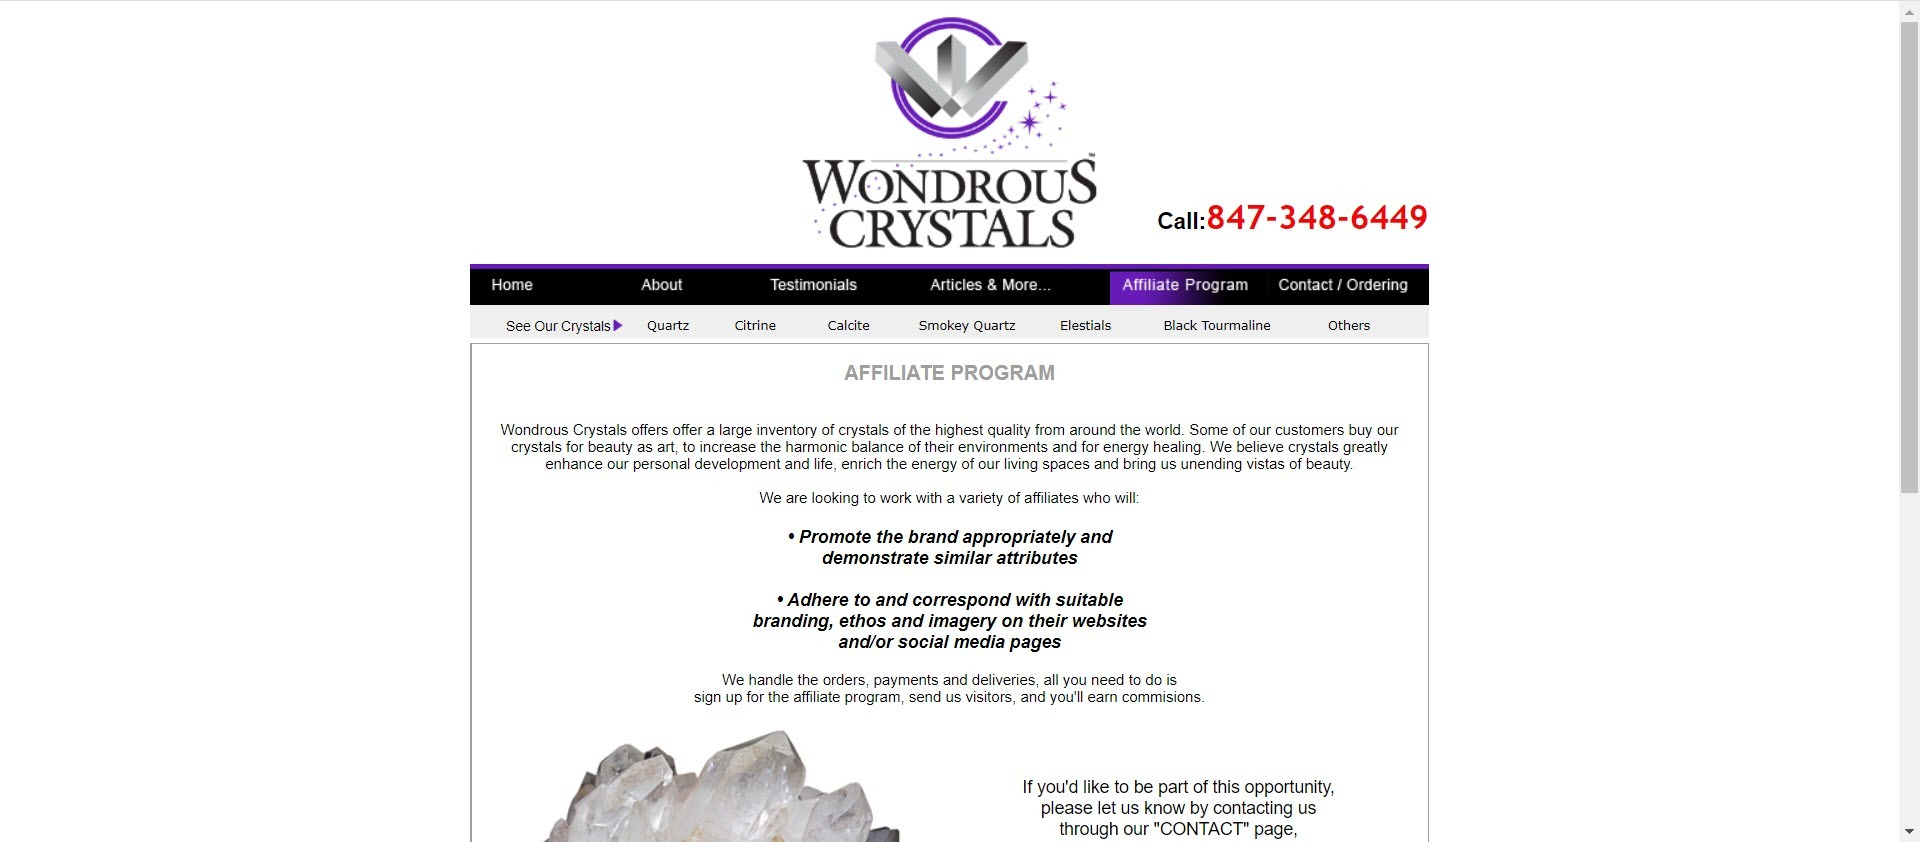 Healing Crystal Stones - Wondrous Crystals Affiliate